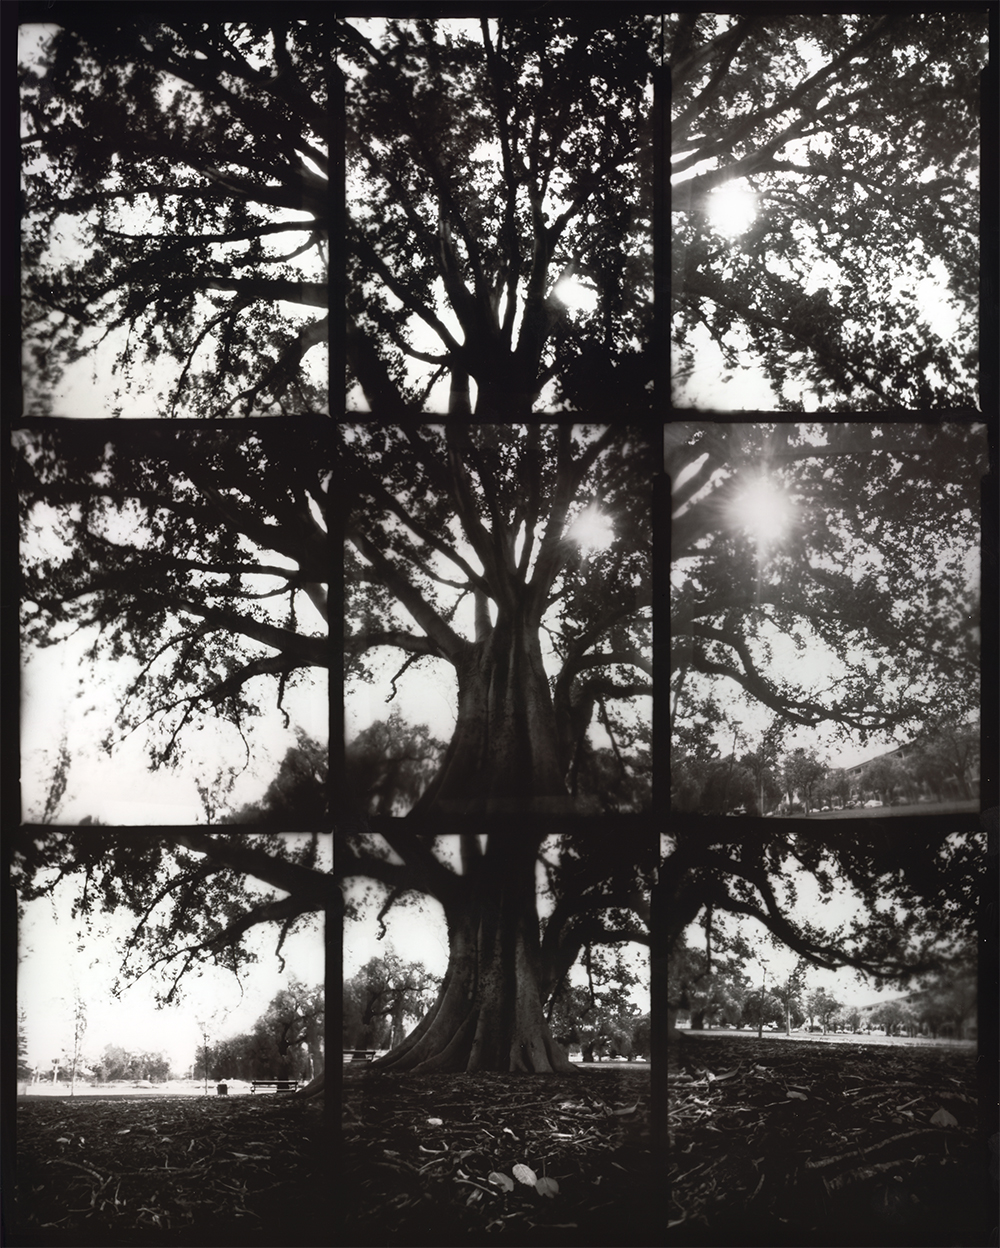 A Composite Image Made From 9 Pinhole Photographs By Alex Bishop Thorpe